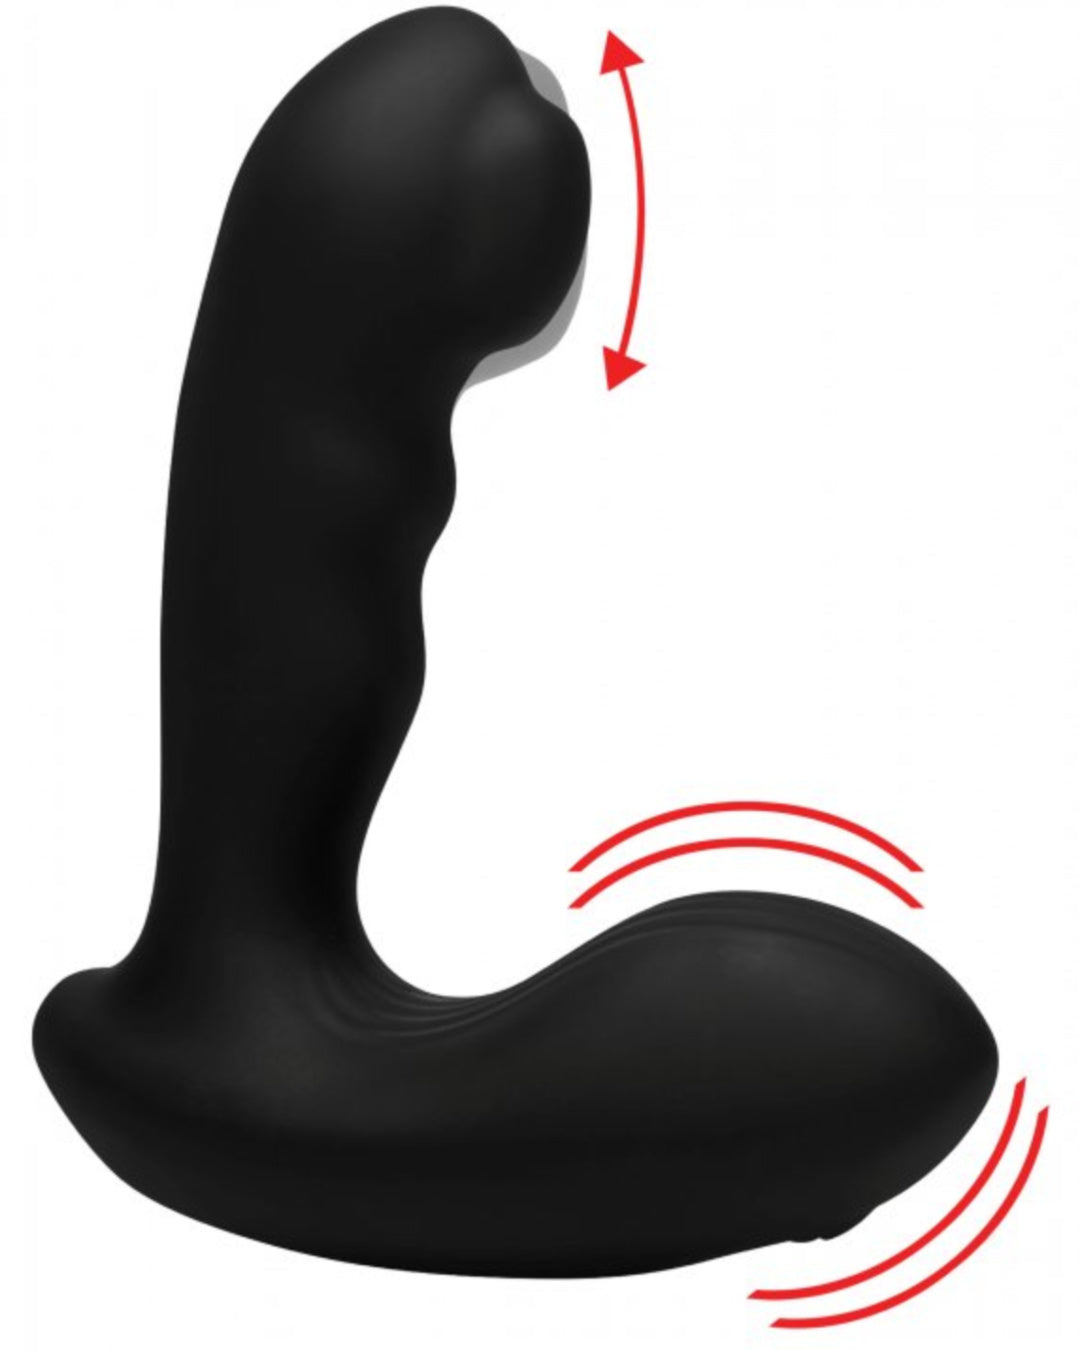 Alpha Pro 7X P-MILKER Silicone Prostate Stimulator with Milking Bead